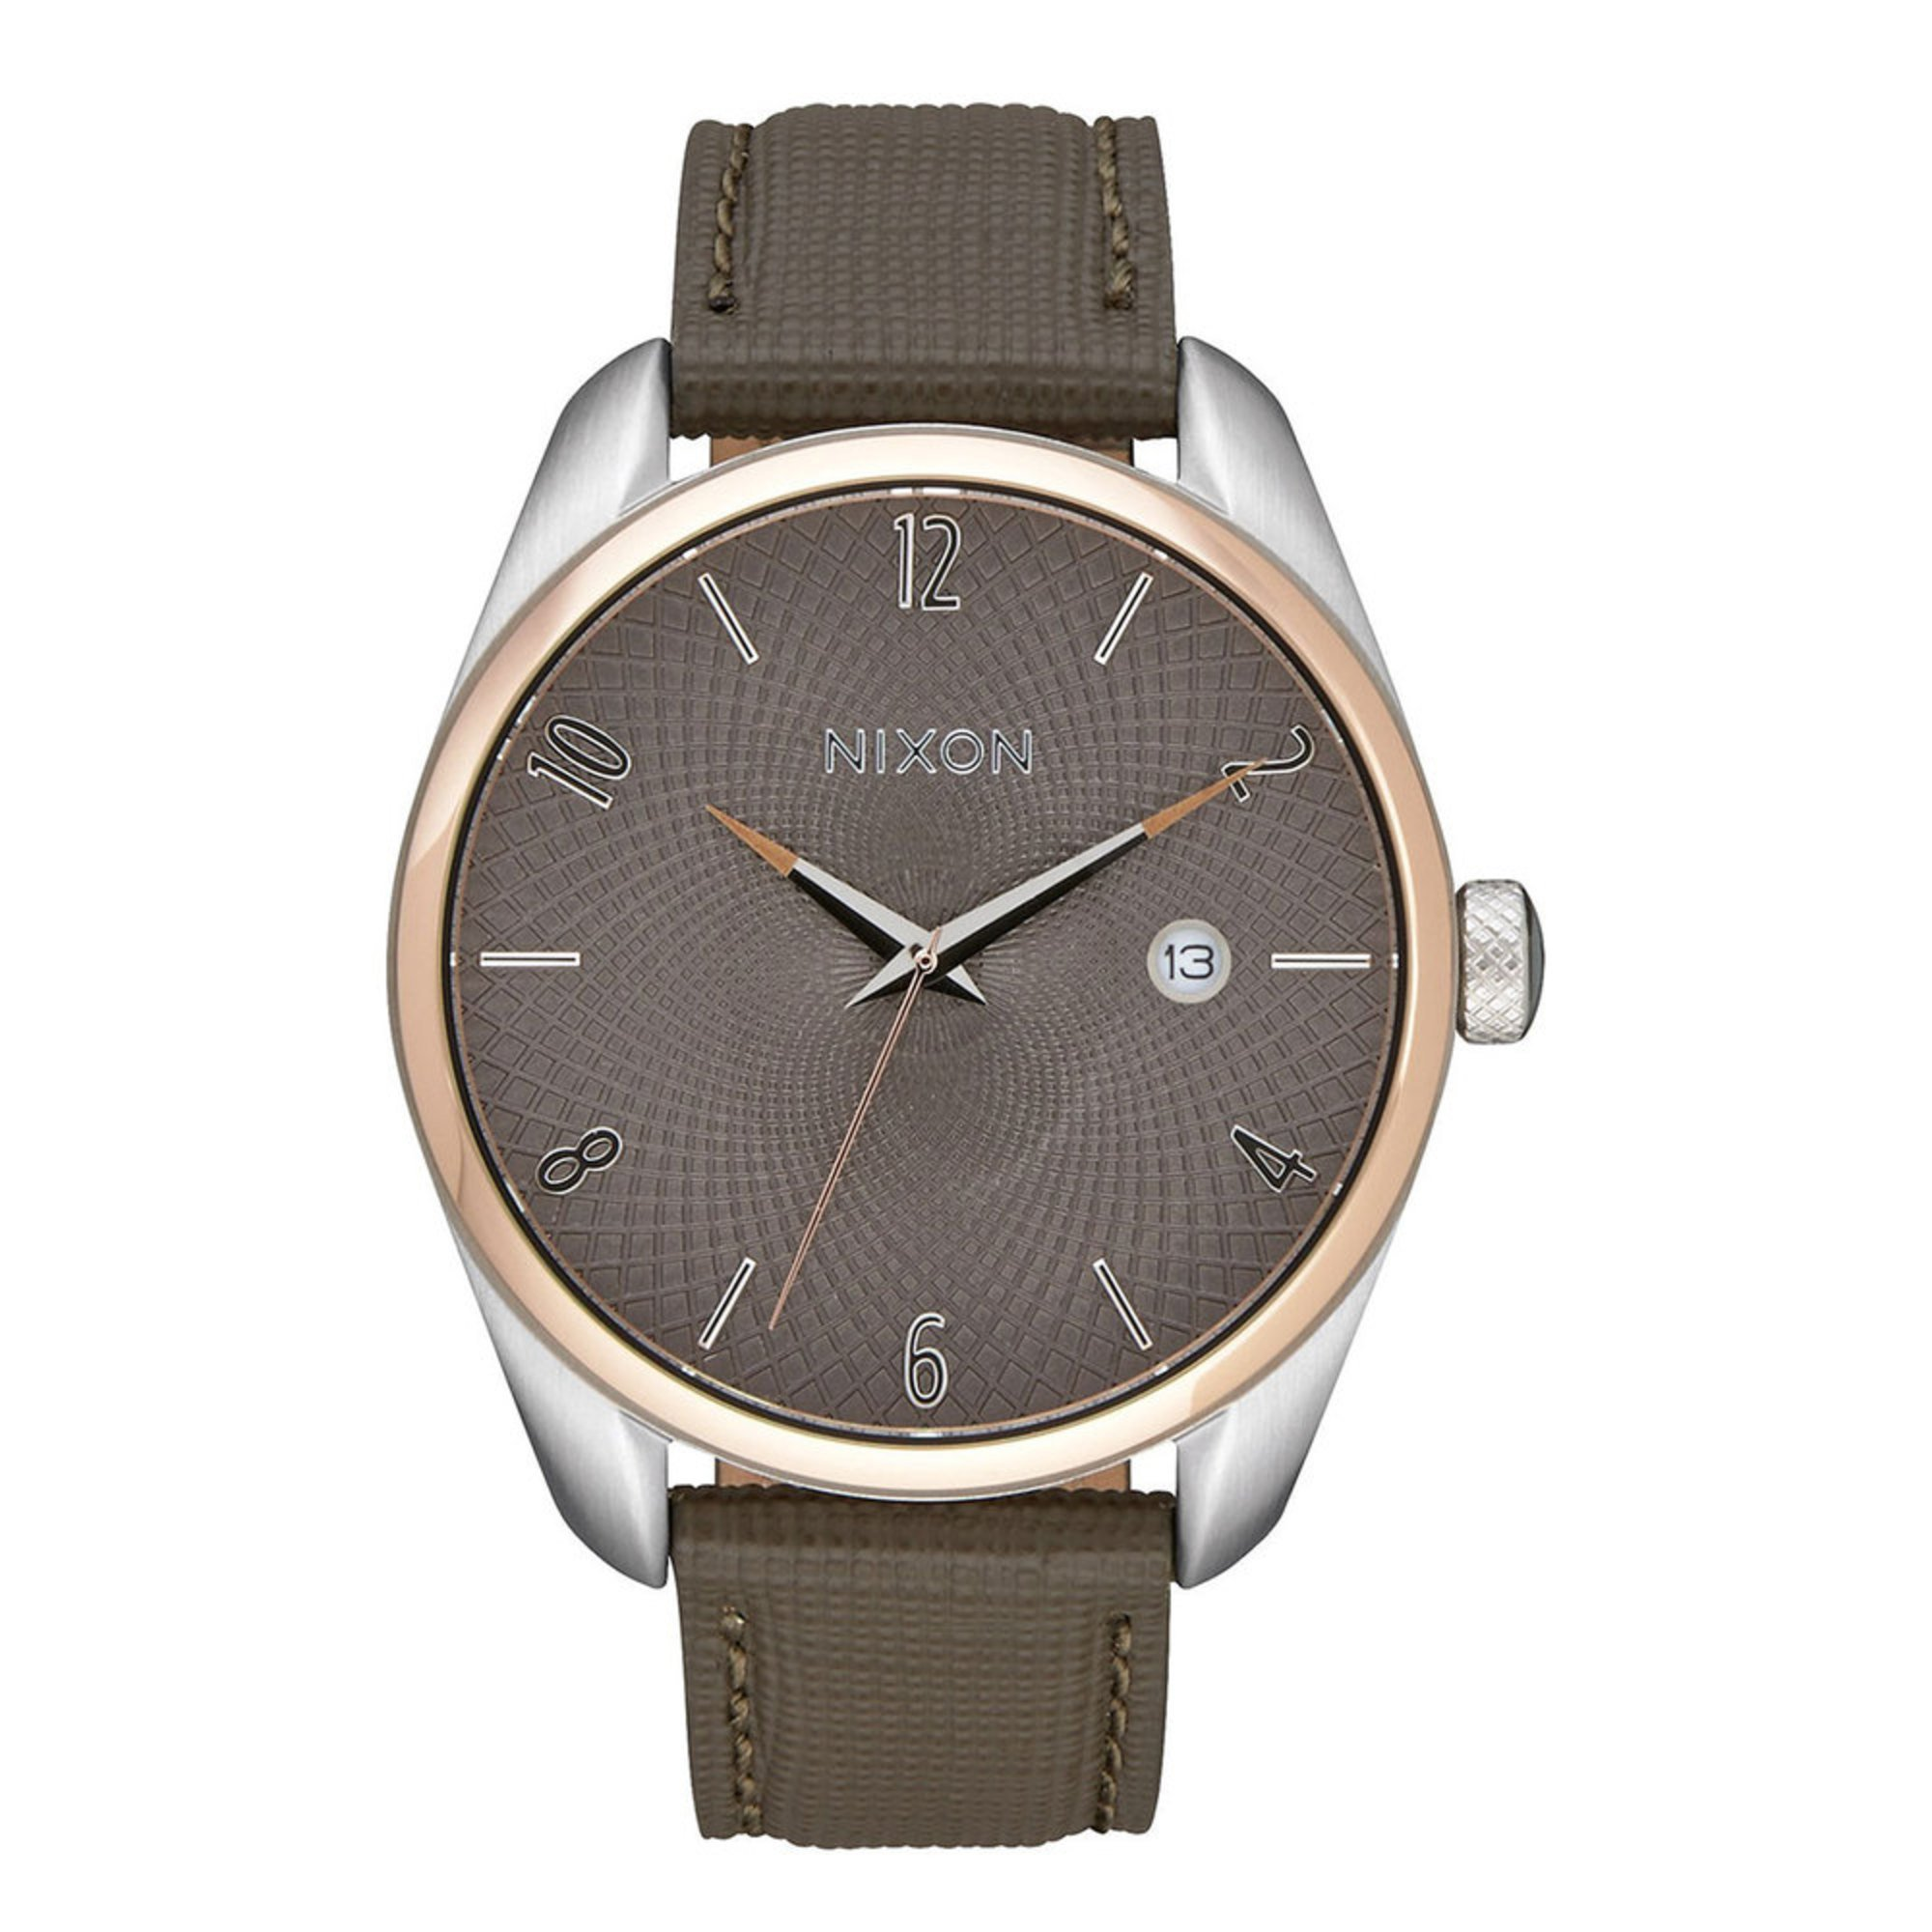 Amazon.com: Replacement Nixon Watch Band: Clothing, Shoes ...